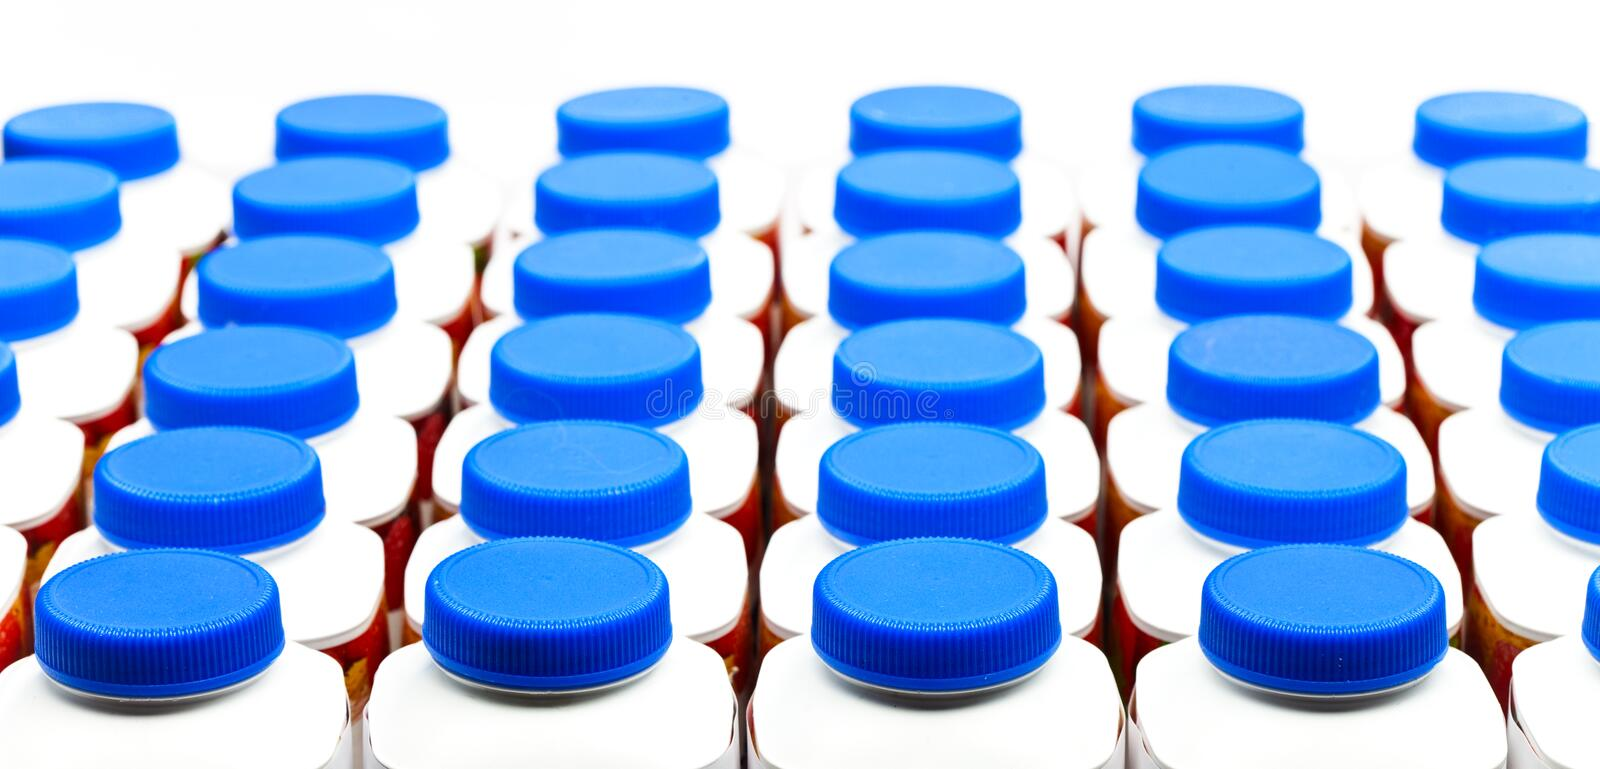 Download Numbers Of Bottles From Under Yogurt Royalty Free Stock Images - Image: 19838189